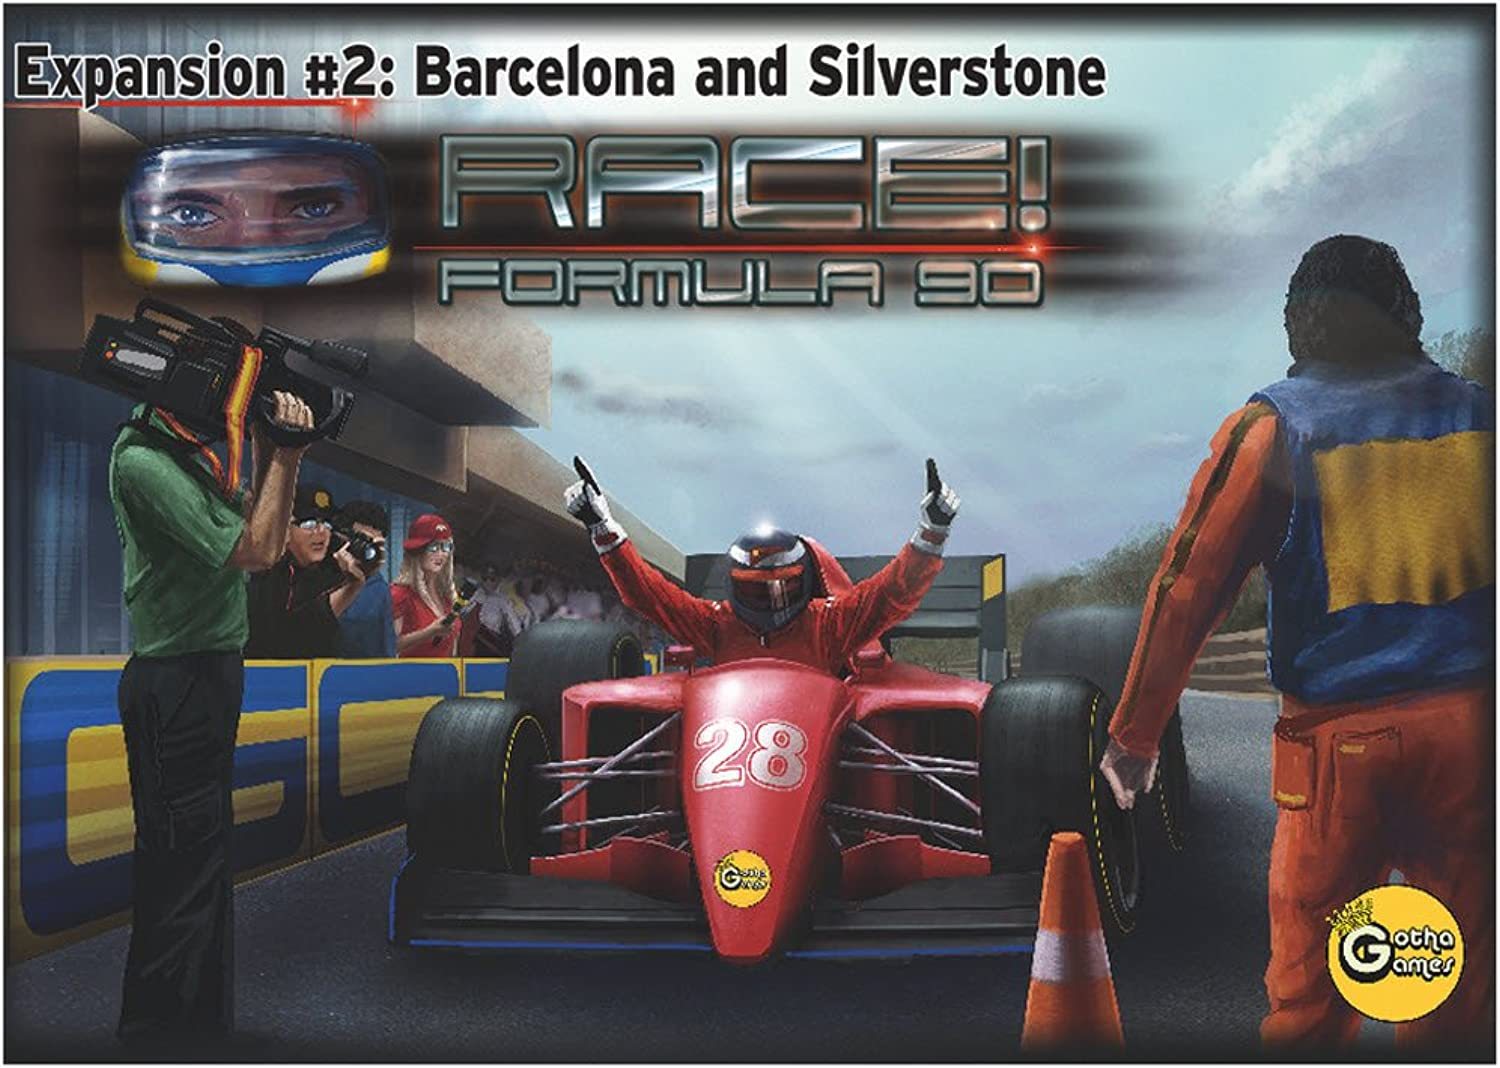 Race  Formula 90  Expansion  2  Barcelona and Silverstone by Gotha Games